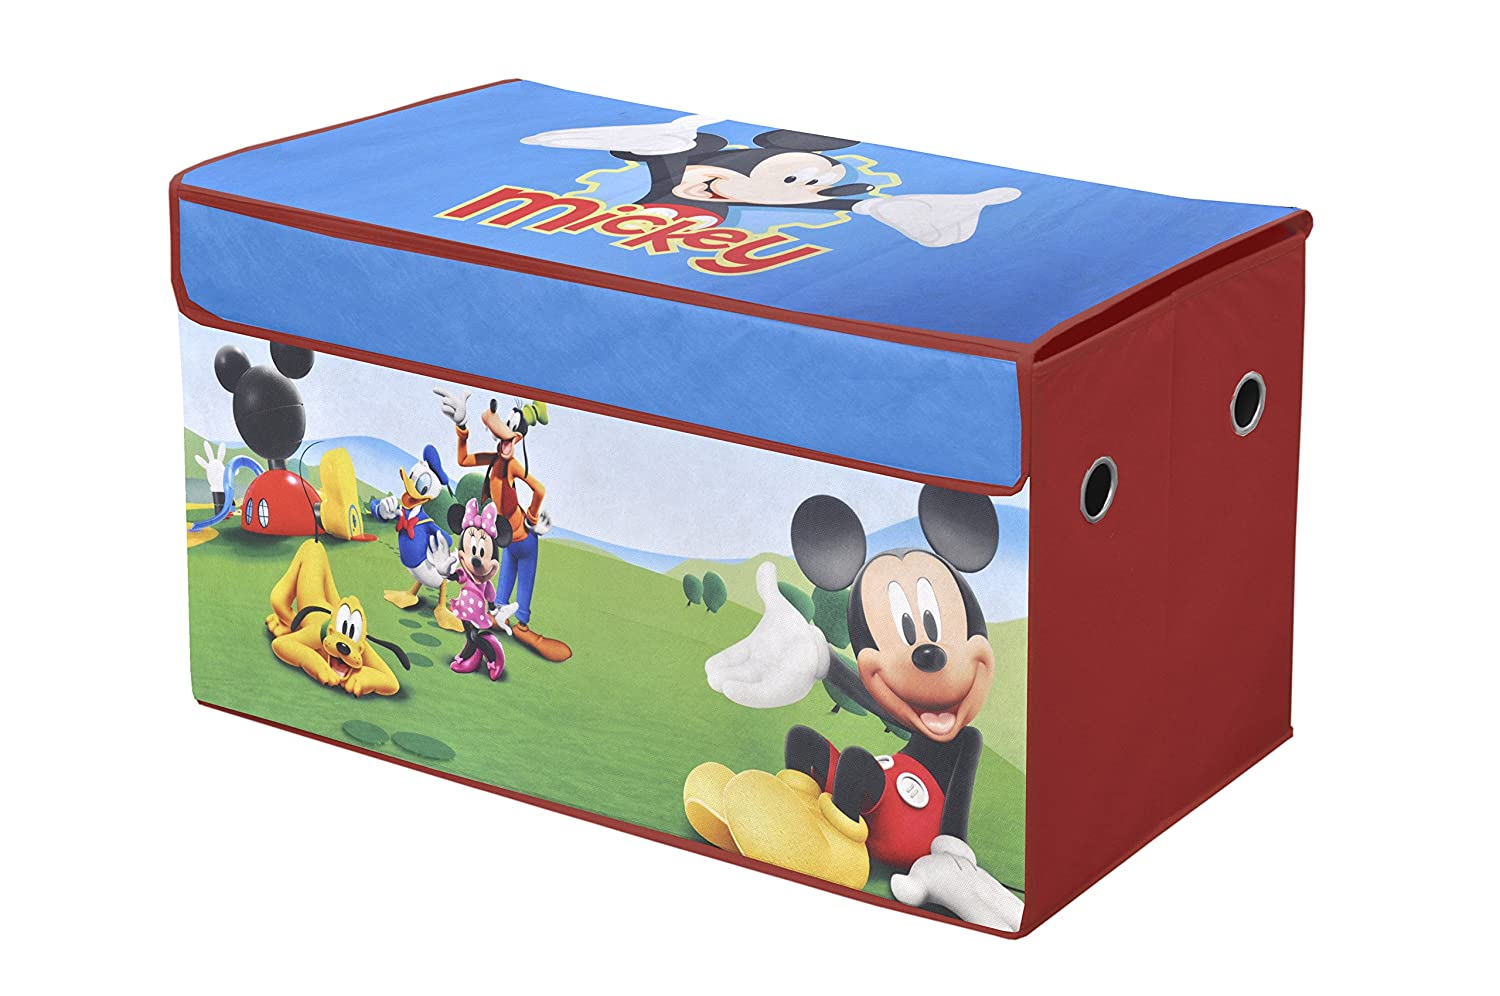 Merveilleux Amazon.com: Disney Mickey Mouse Clubhouse Collapsible Storage Trunk: Toys U0026  Games